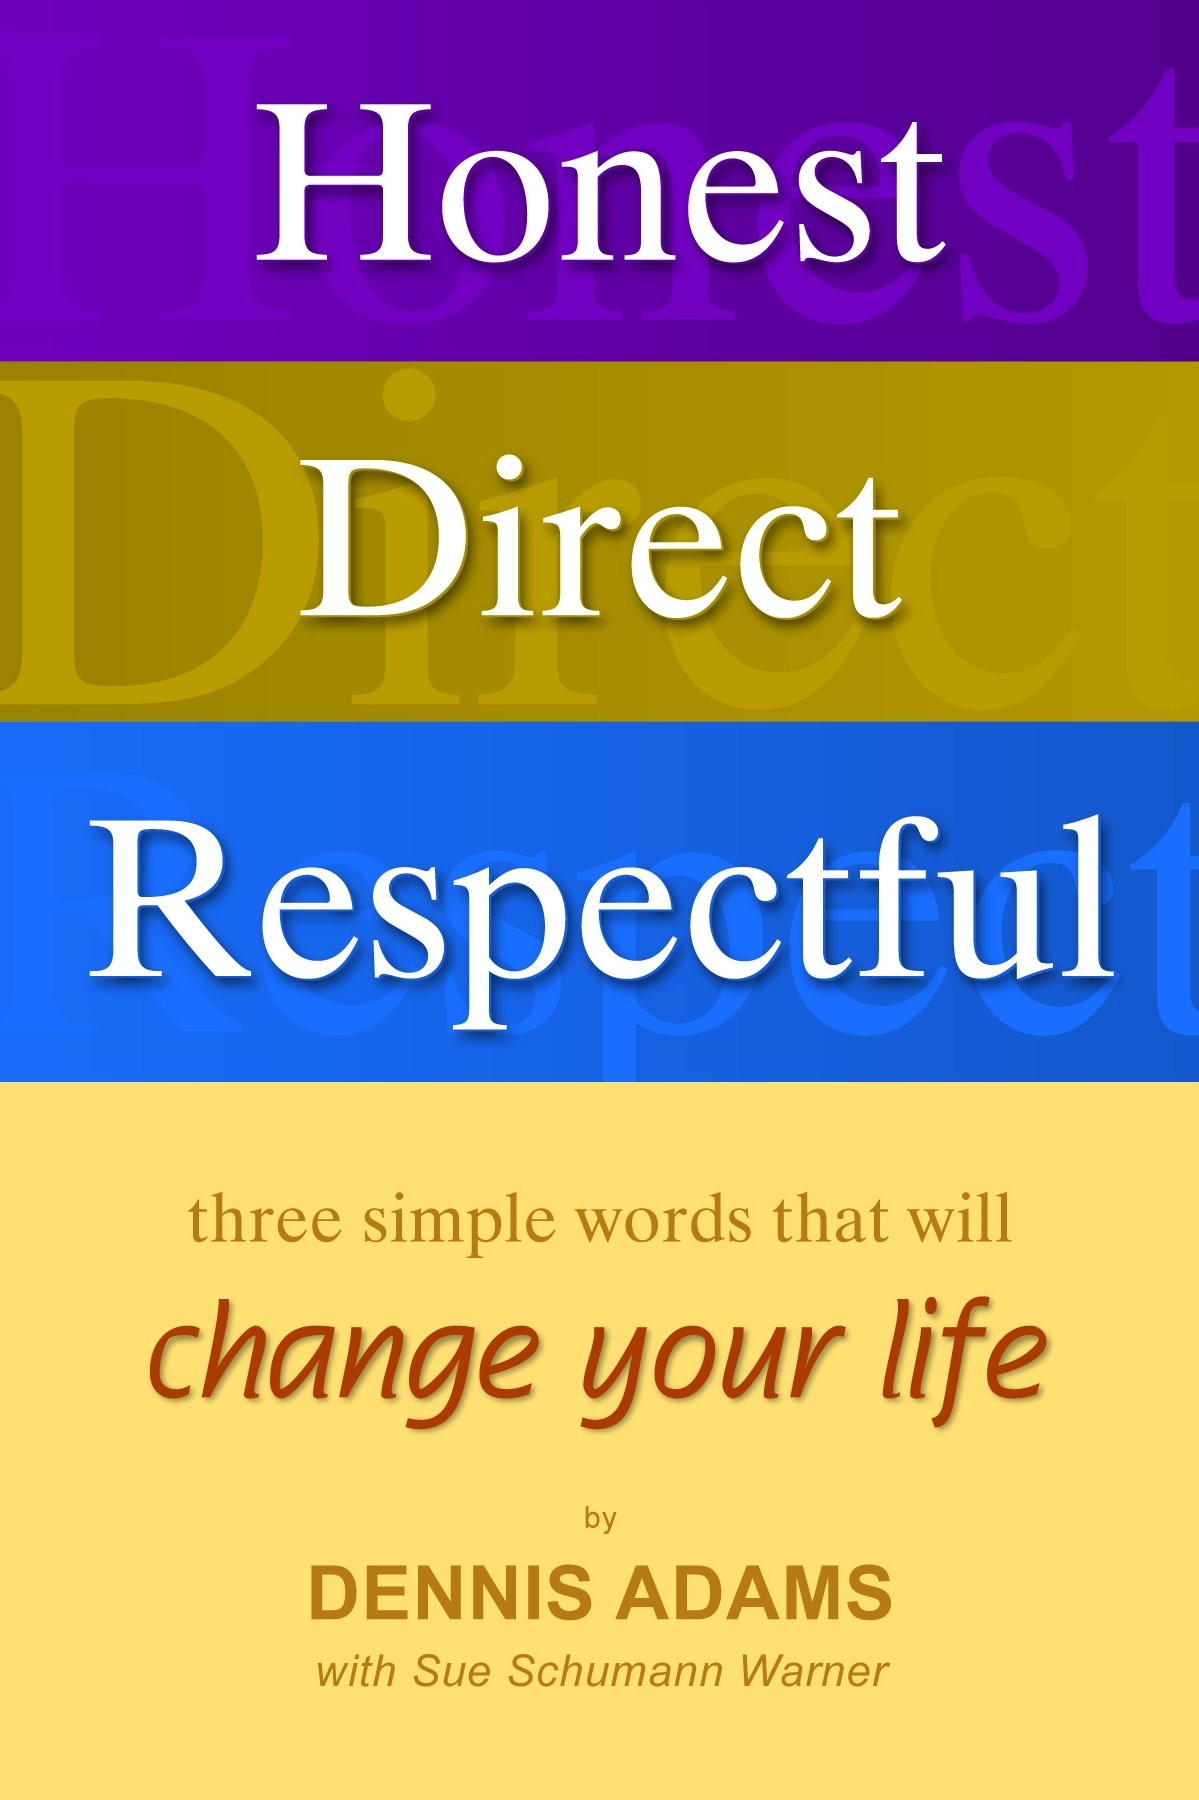 Honest, Direct, Respectful: Three Simple Words that will Change your Life